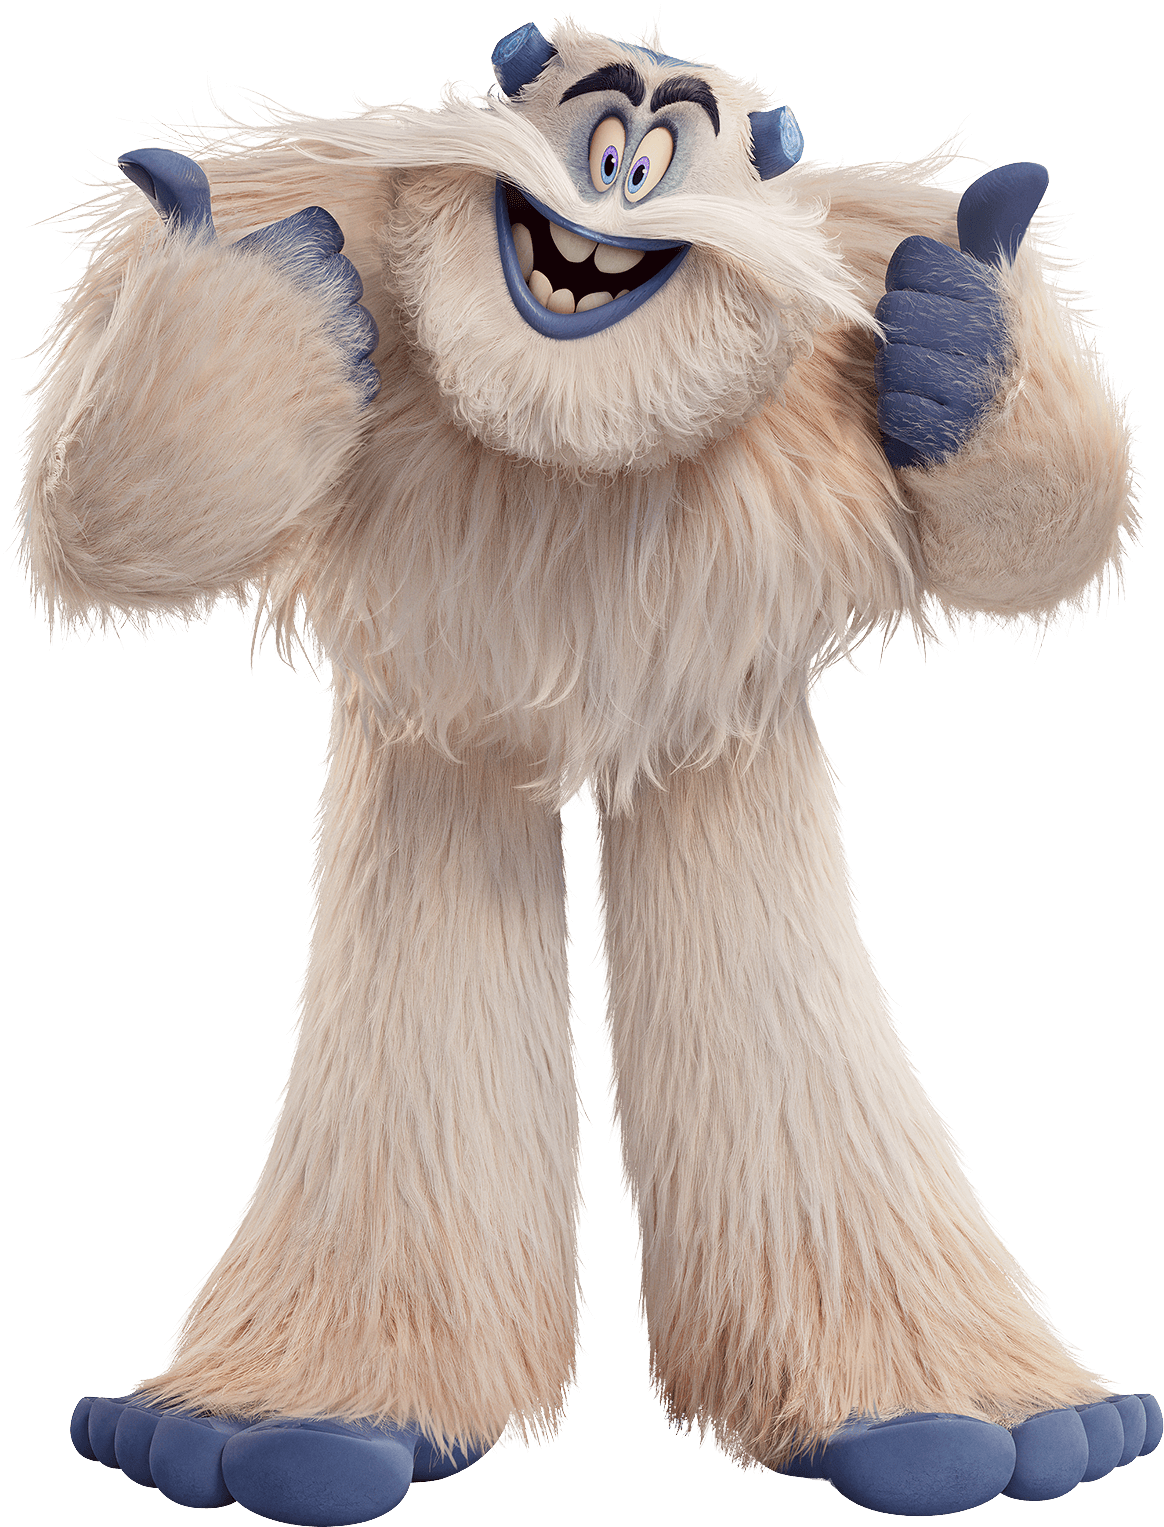 Smallfoot Dorgle Yeti Thumbs Up transparent PNG.